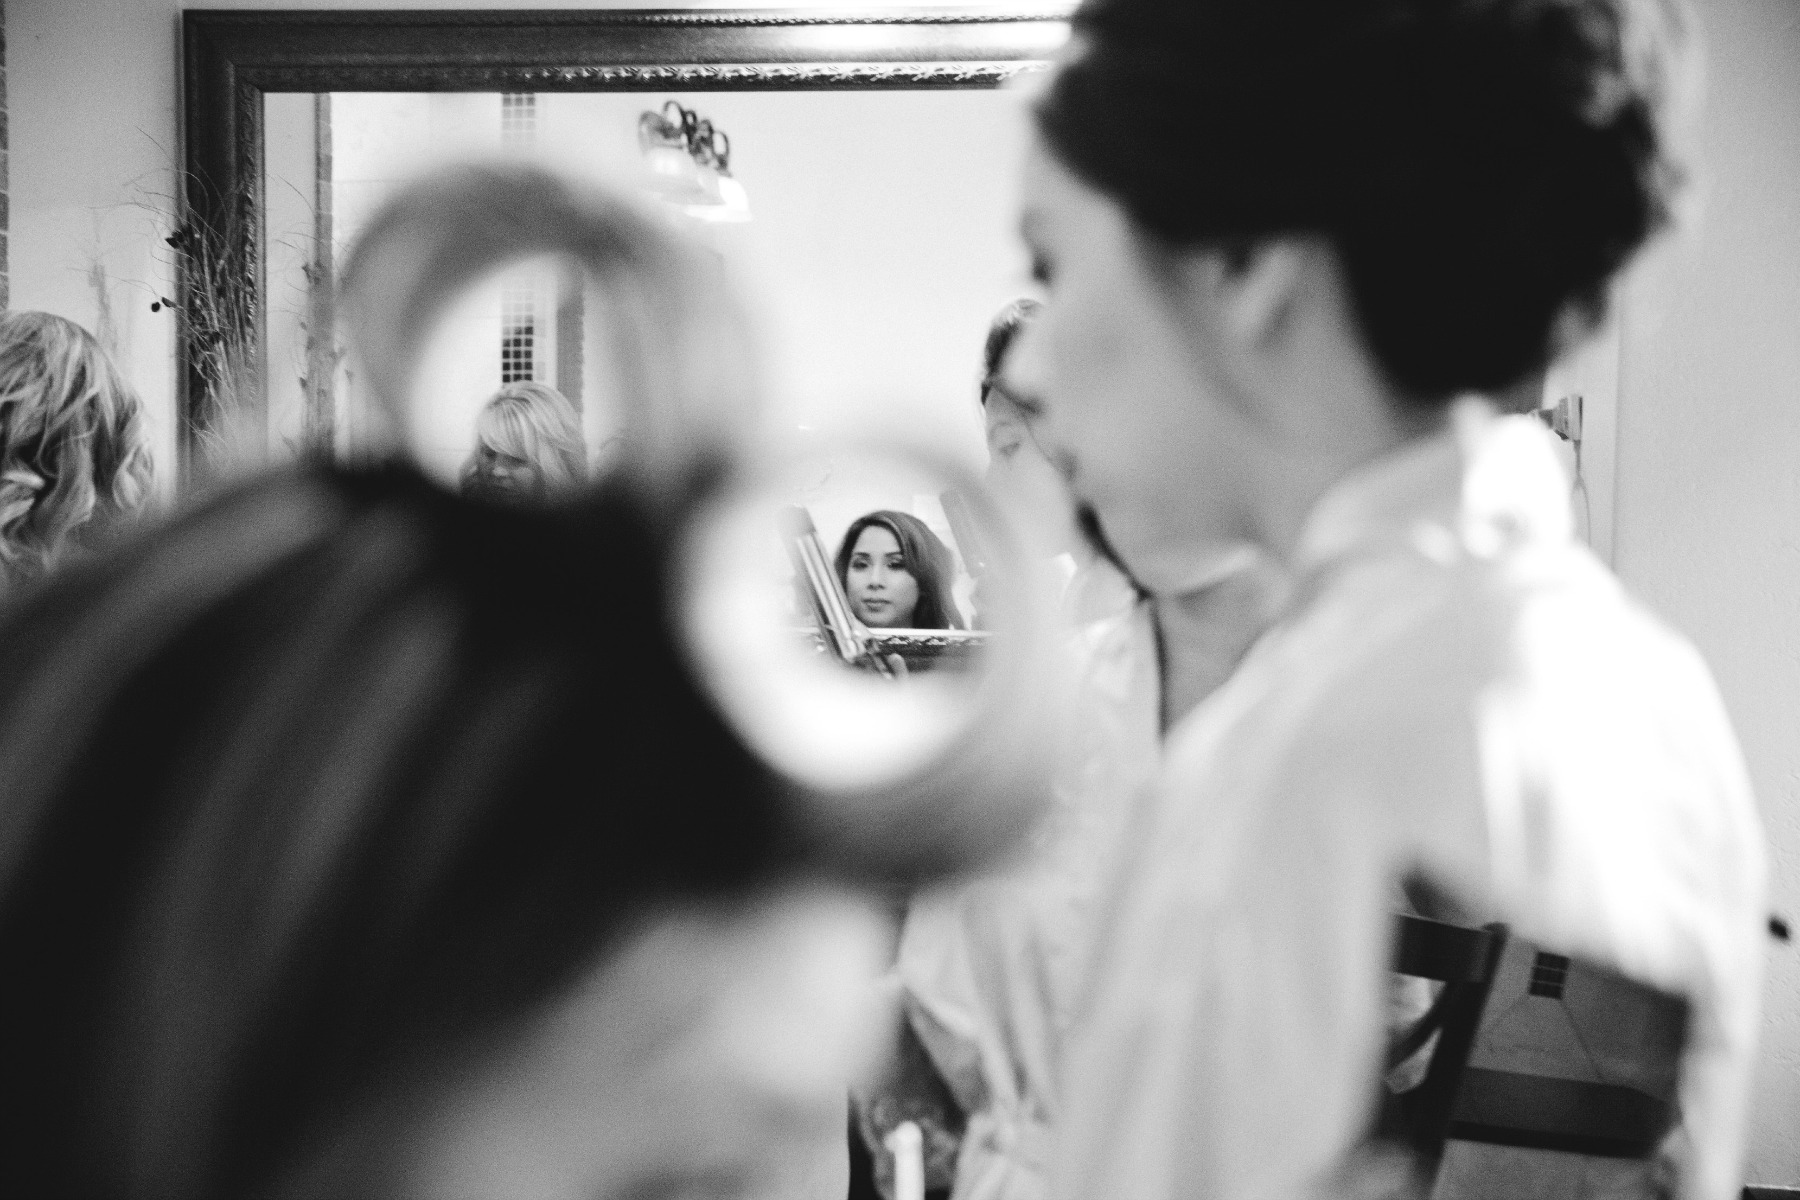 creative getting ready shot of brides mirror reflection taken through a bridesmaids rollers